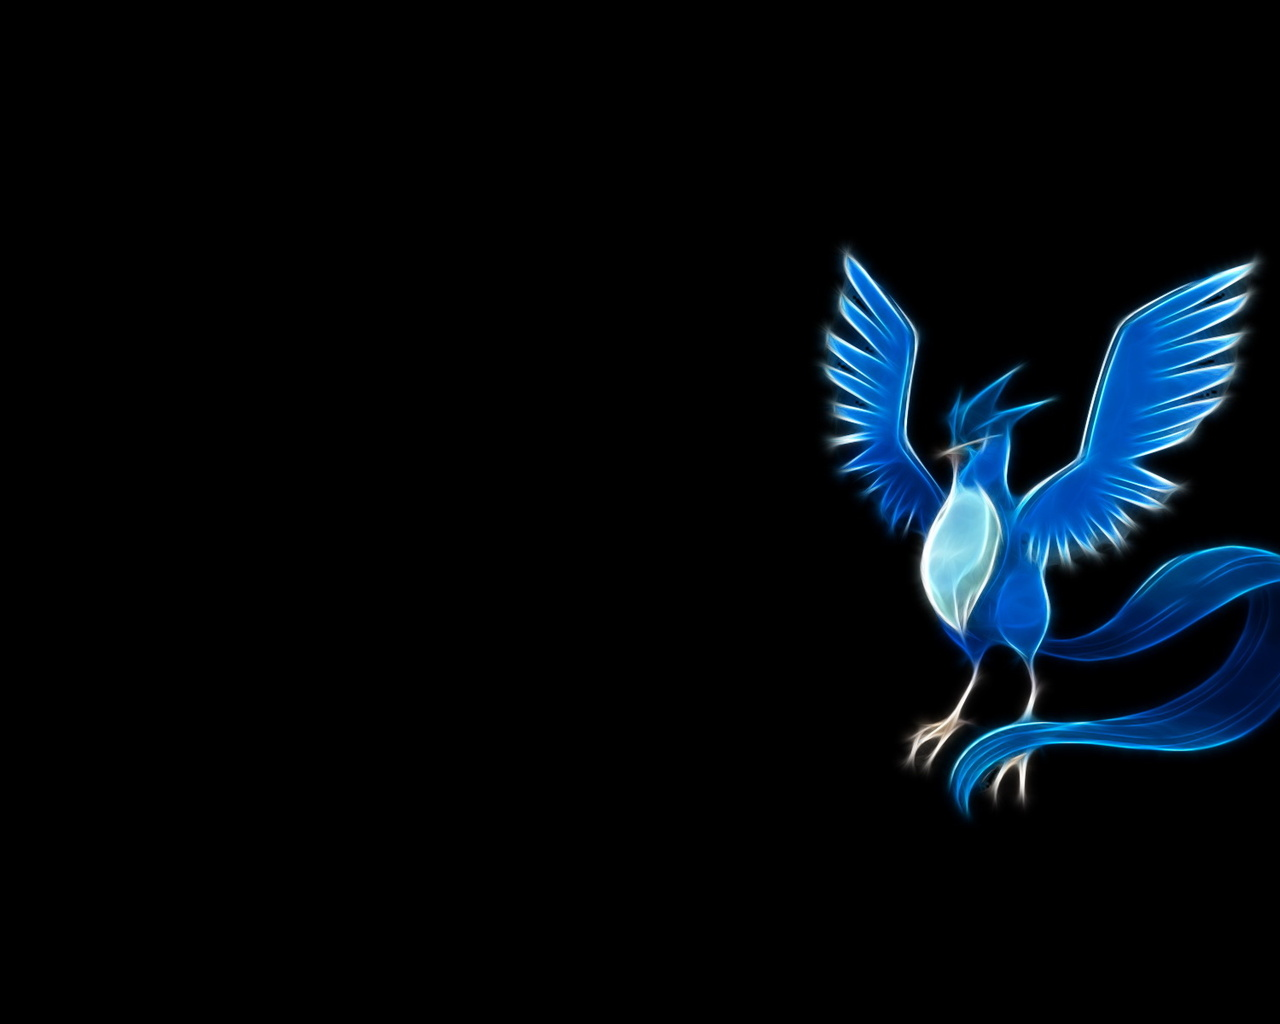 Pokemon Wallpapers Fondo de Pantalla HD   Alta calidad 1366x768 o 1280x1024